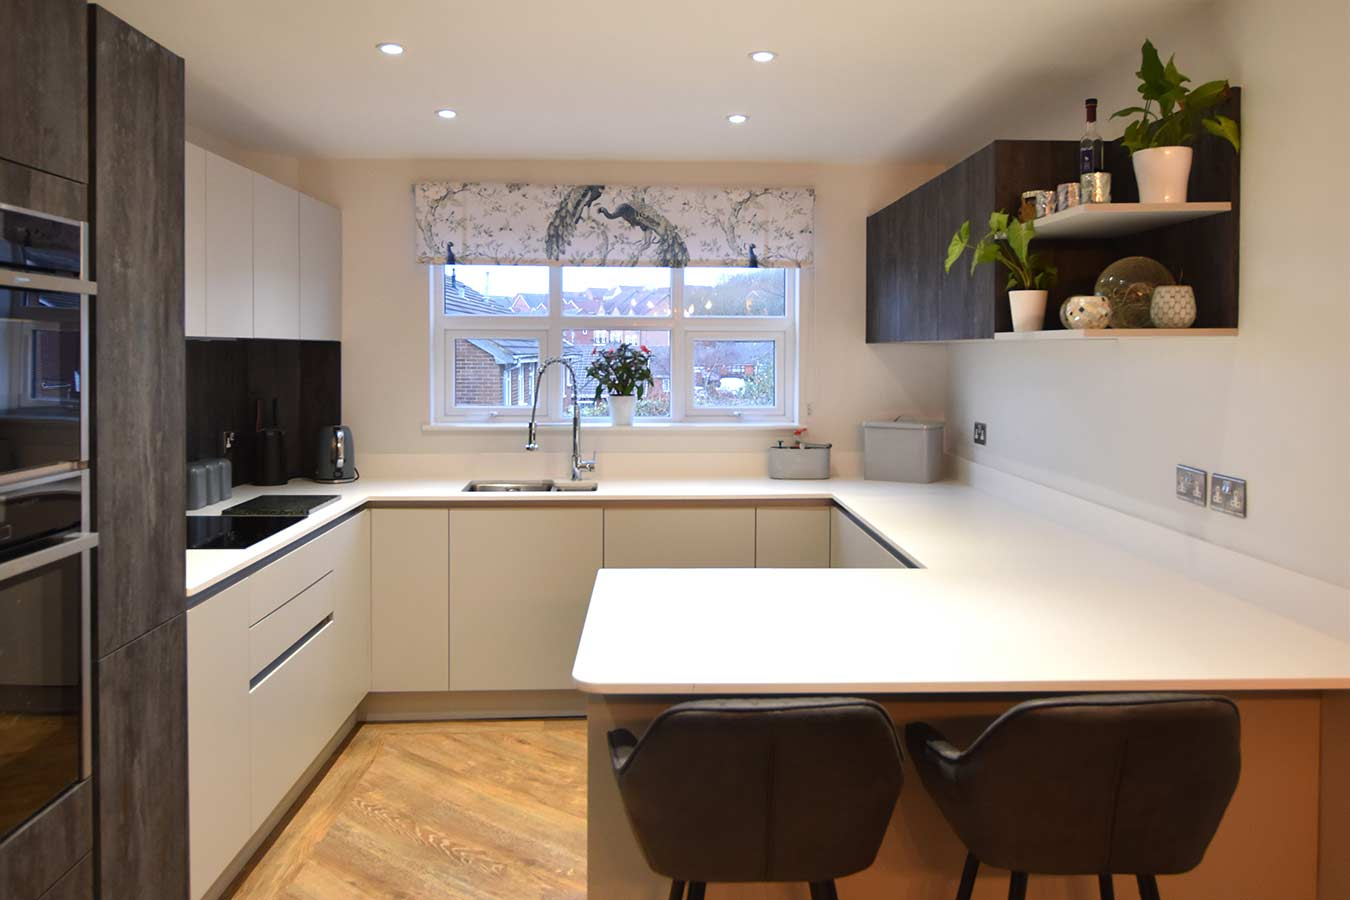 Masterclass Kitchens Handleless Kitchen in Light Grey